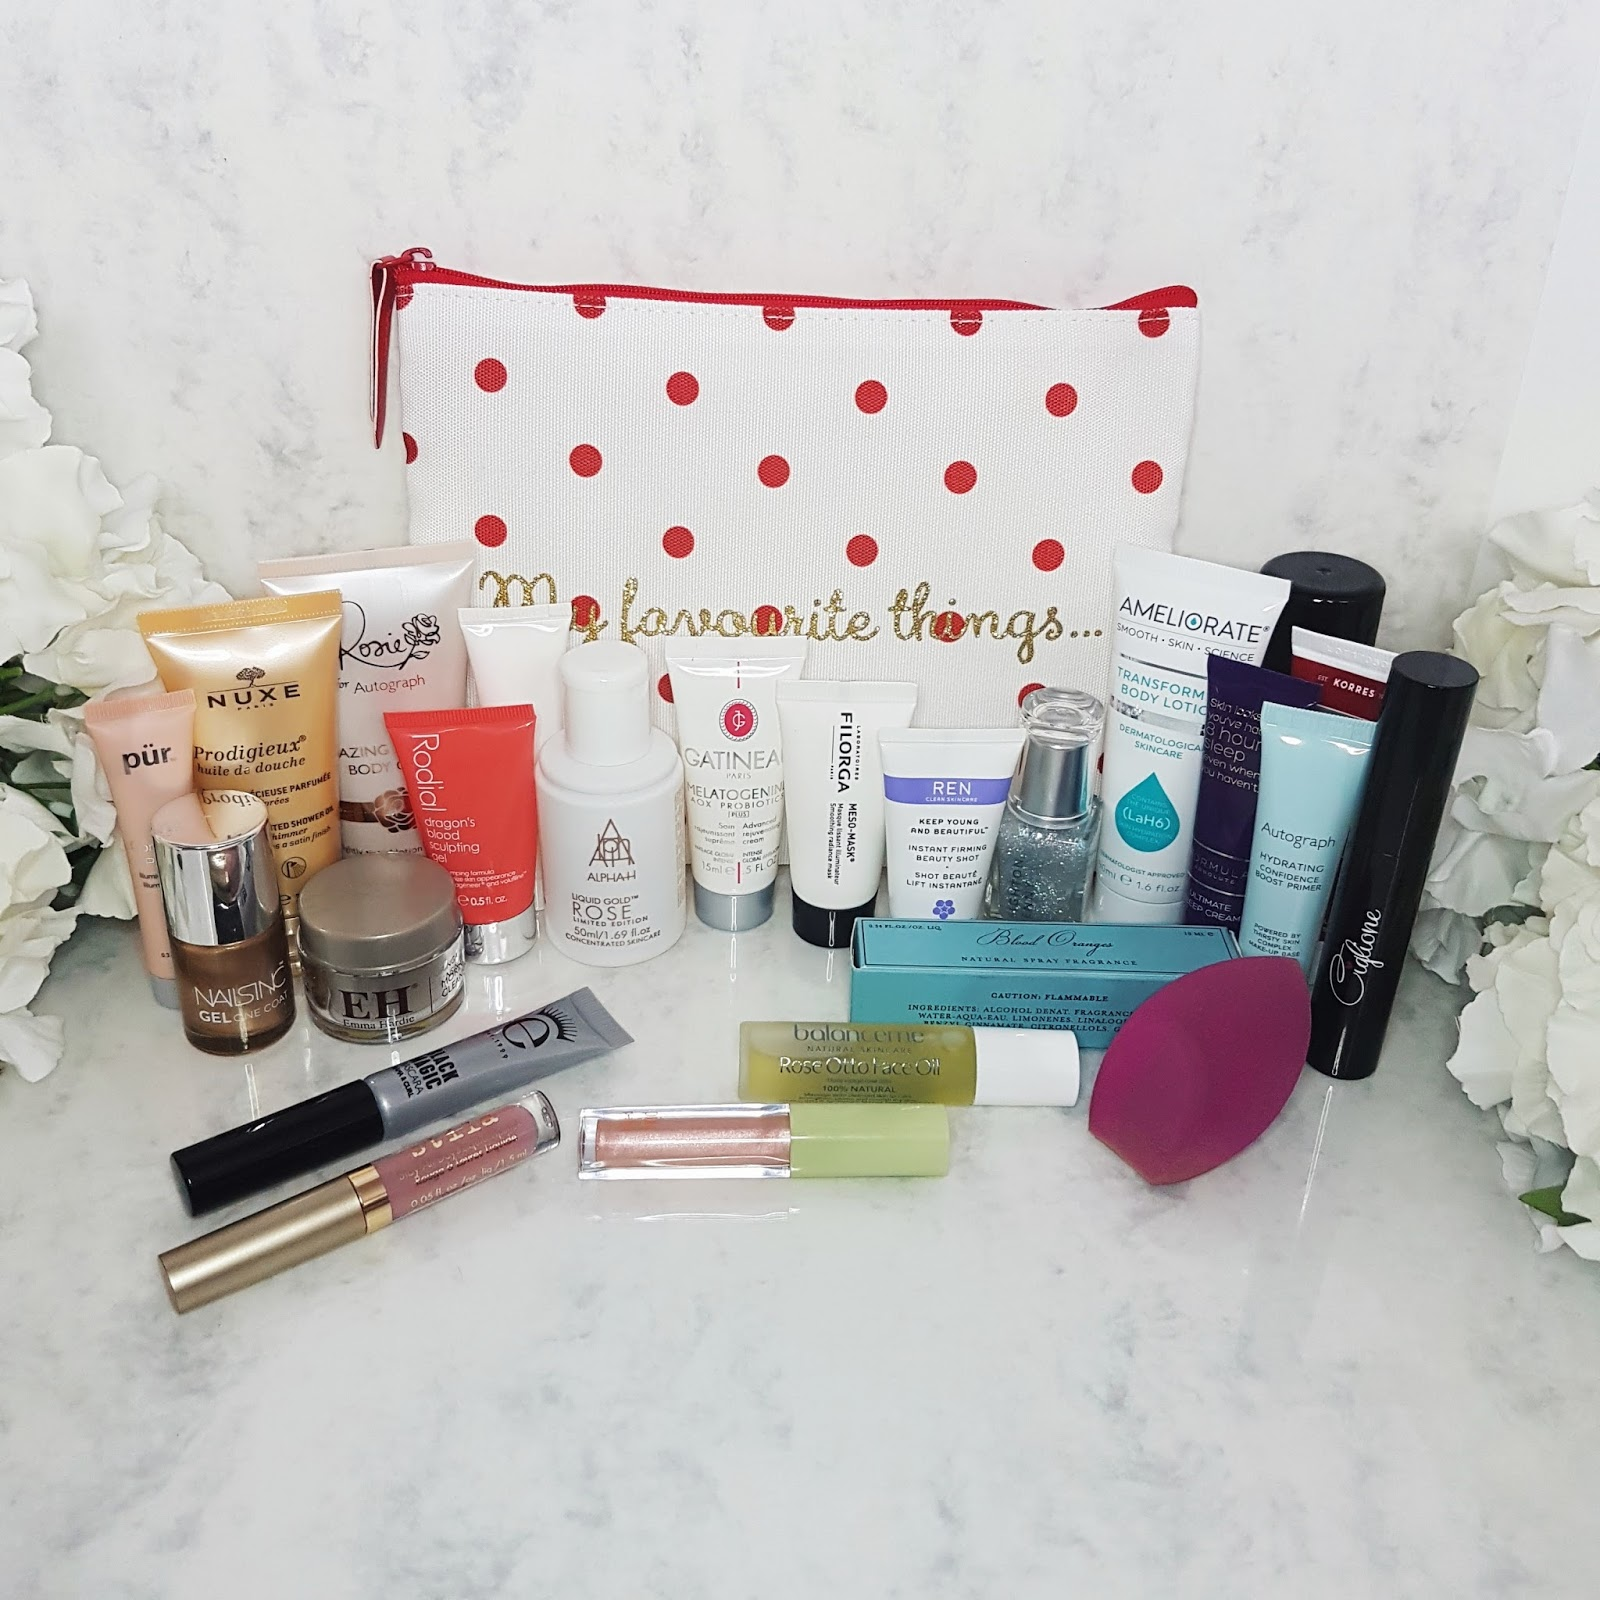 Products from Marks and Spencer Beauty Advent Calendar